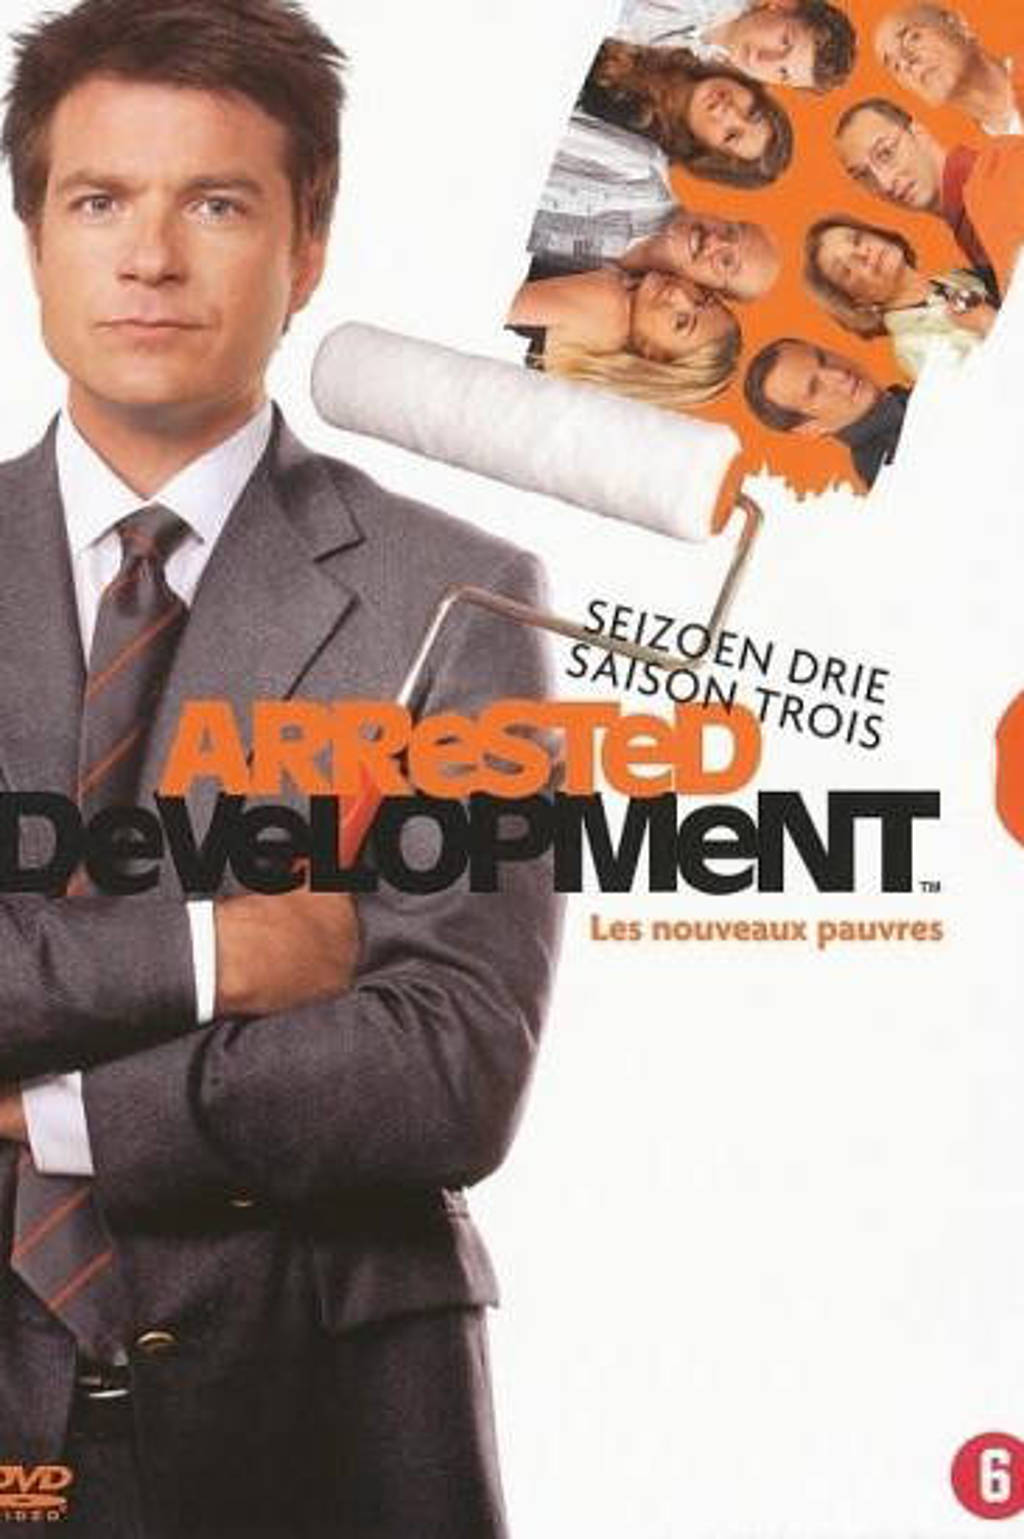 Arrested development - Seizoen 3 (DVD)